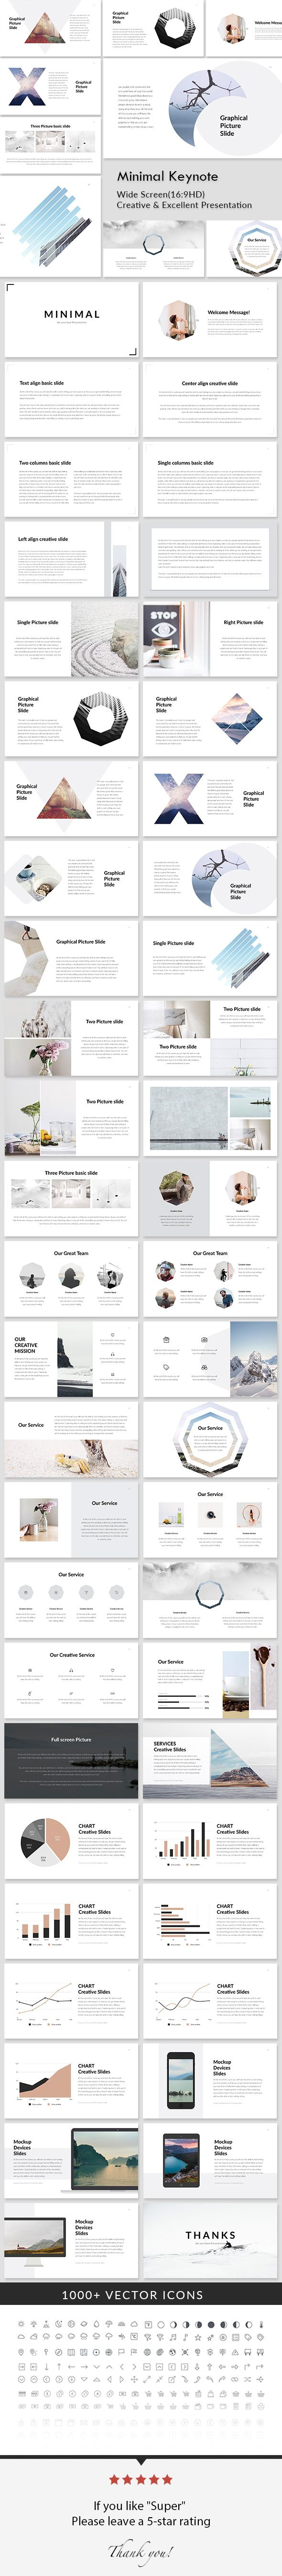 Minimal - Creative Keynote Presentation Template